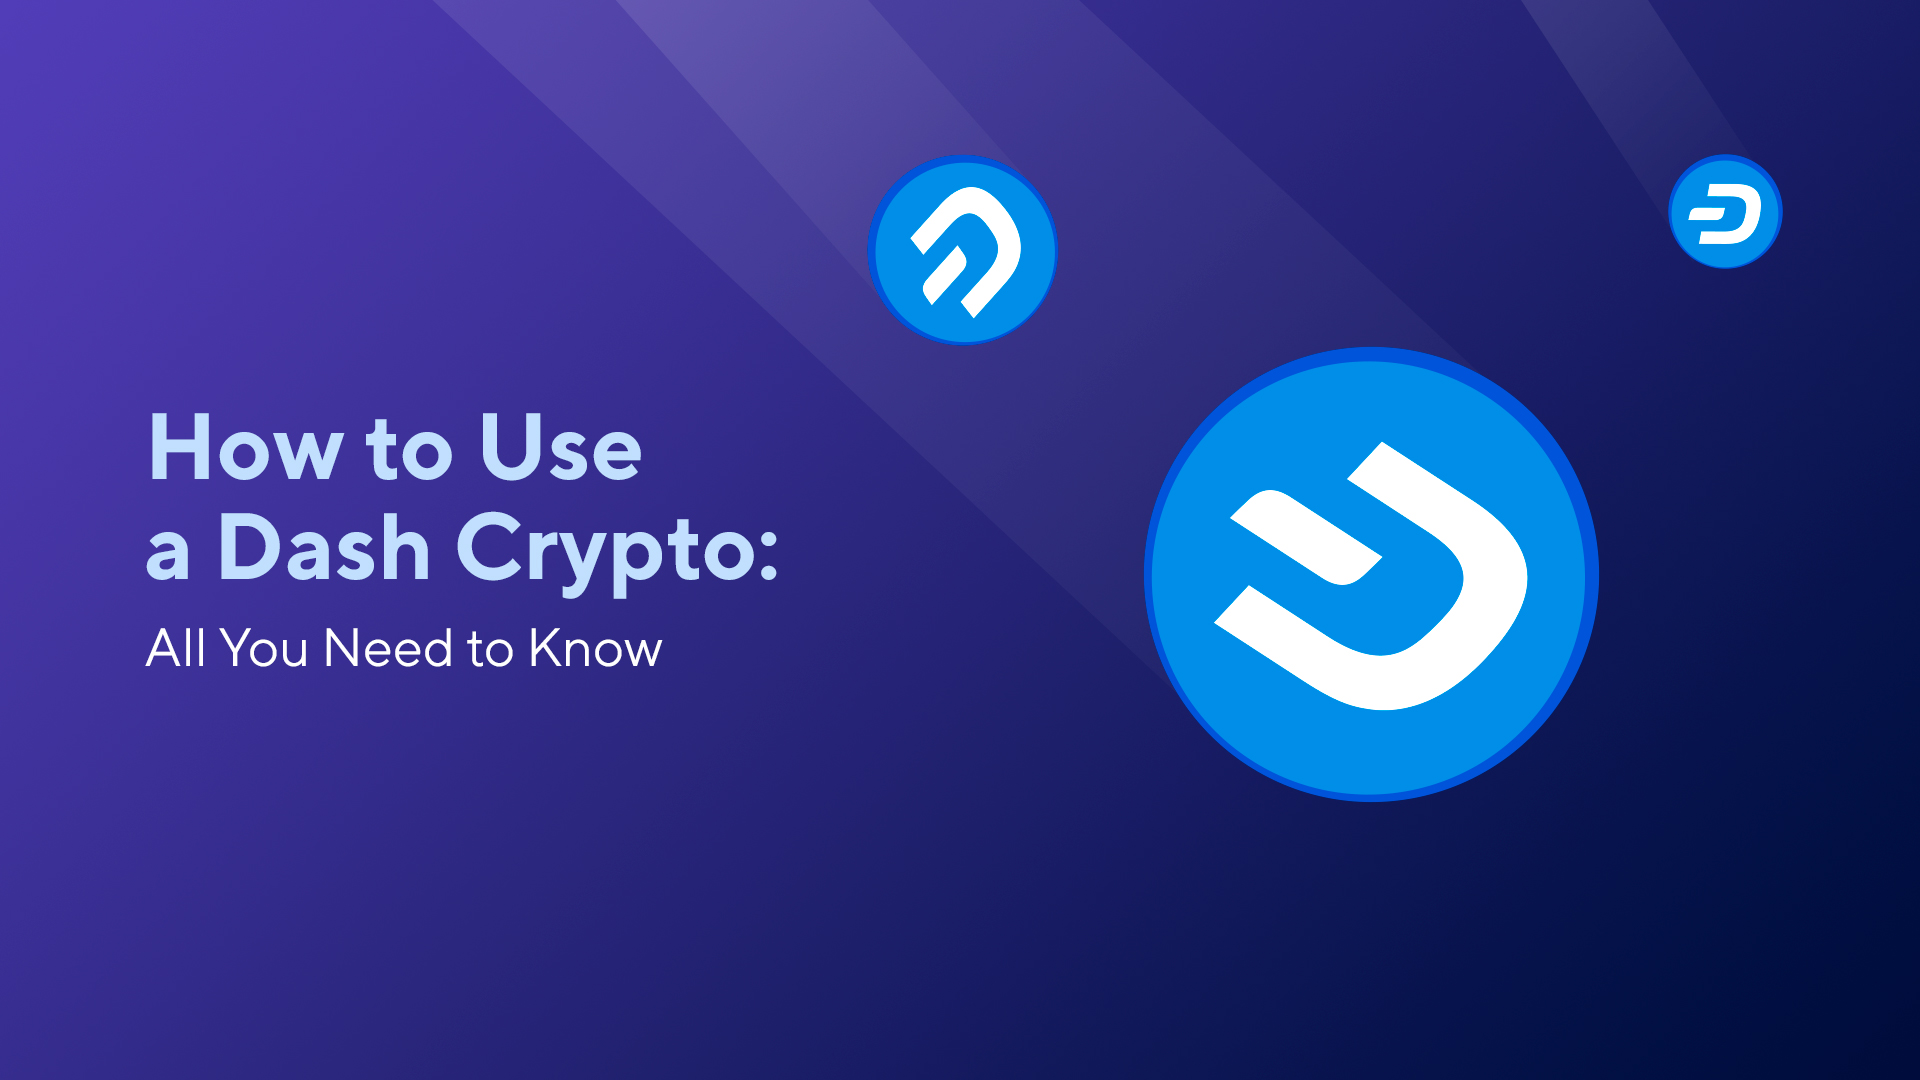 How to Use a Dash Crypto: All You Need to Know